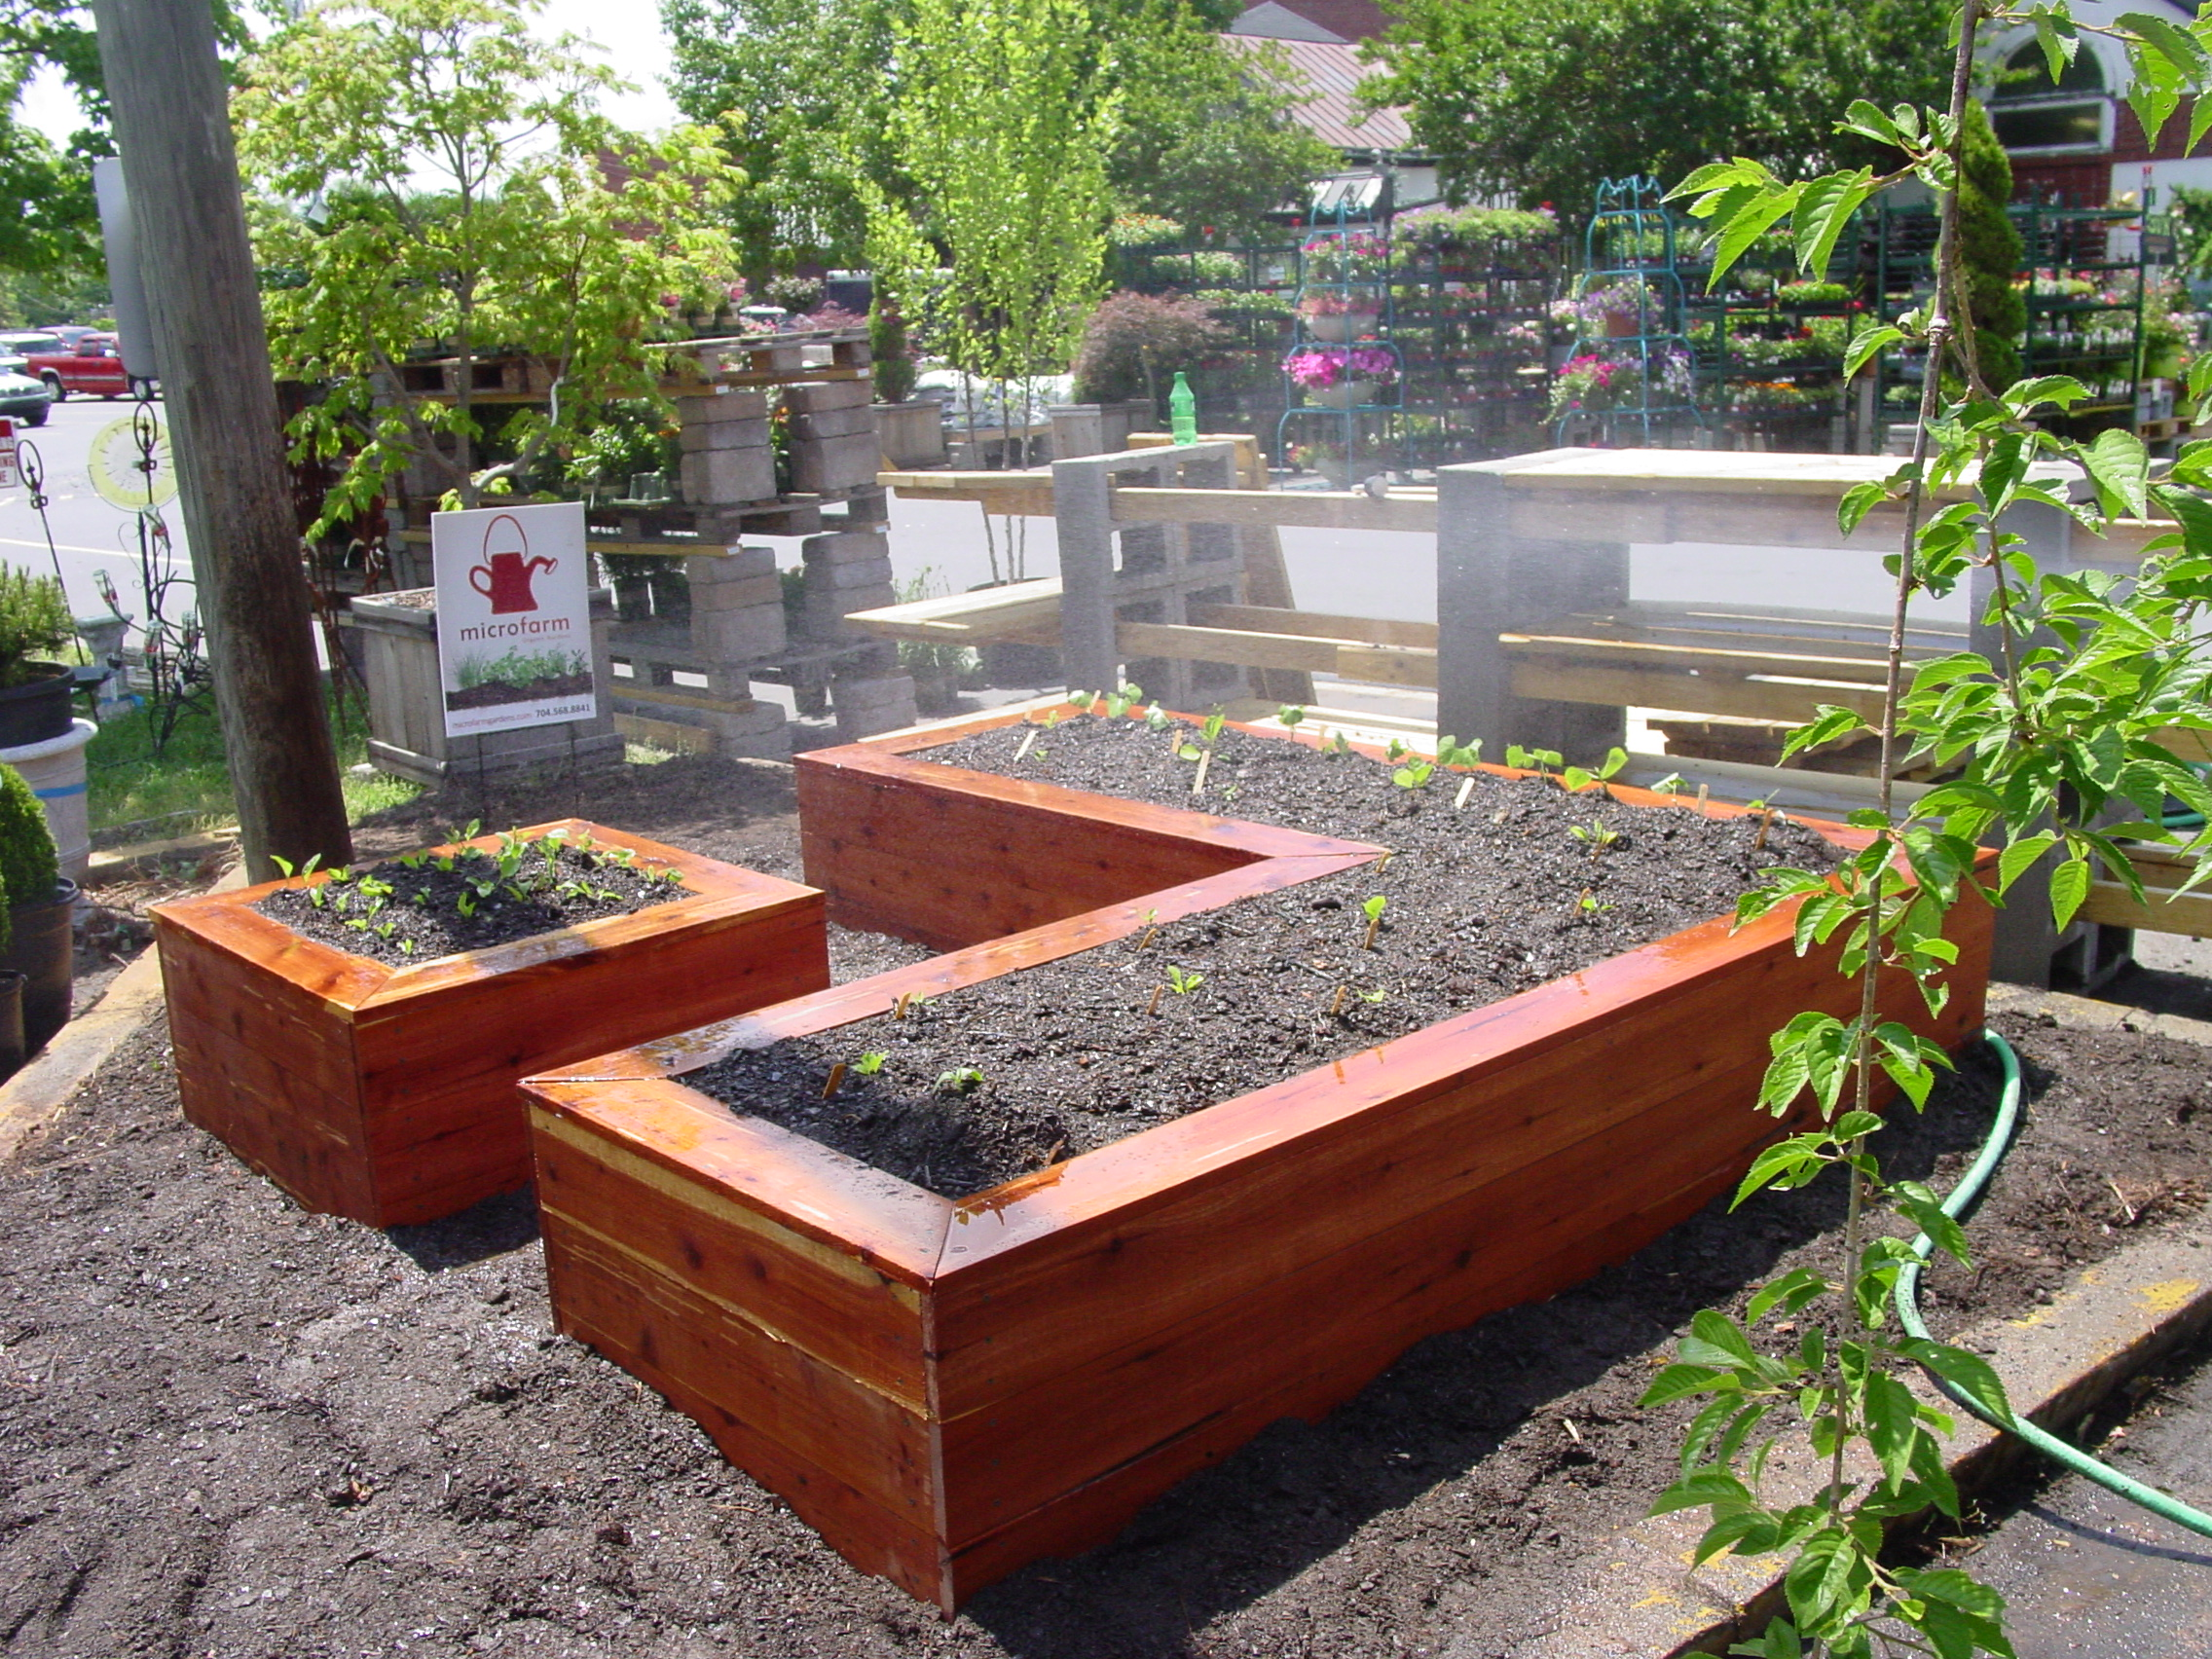 Ordinaire Garden Design With Raised Garden Beds For Sale In Charlotte, NC Microfarm  Organic With Raised